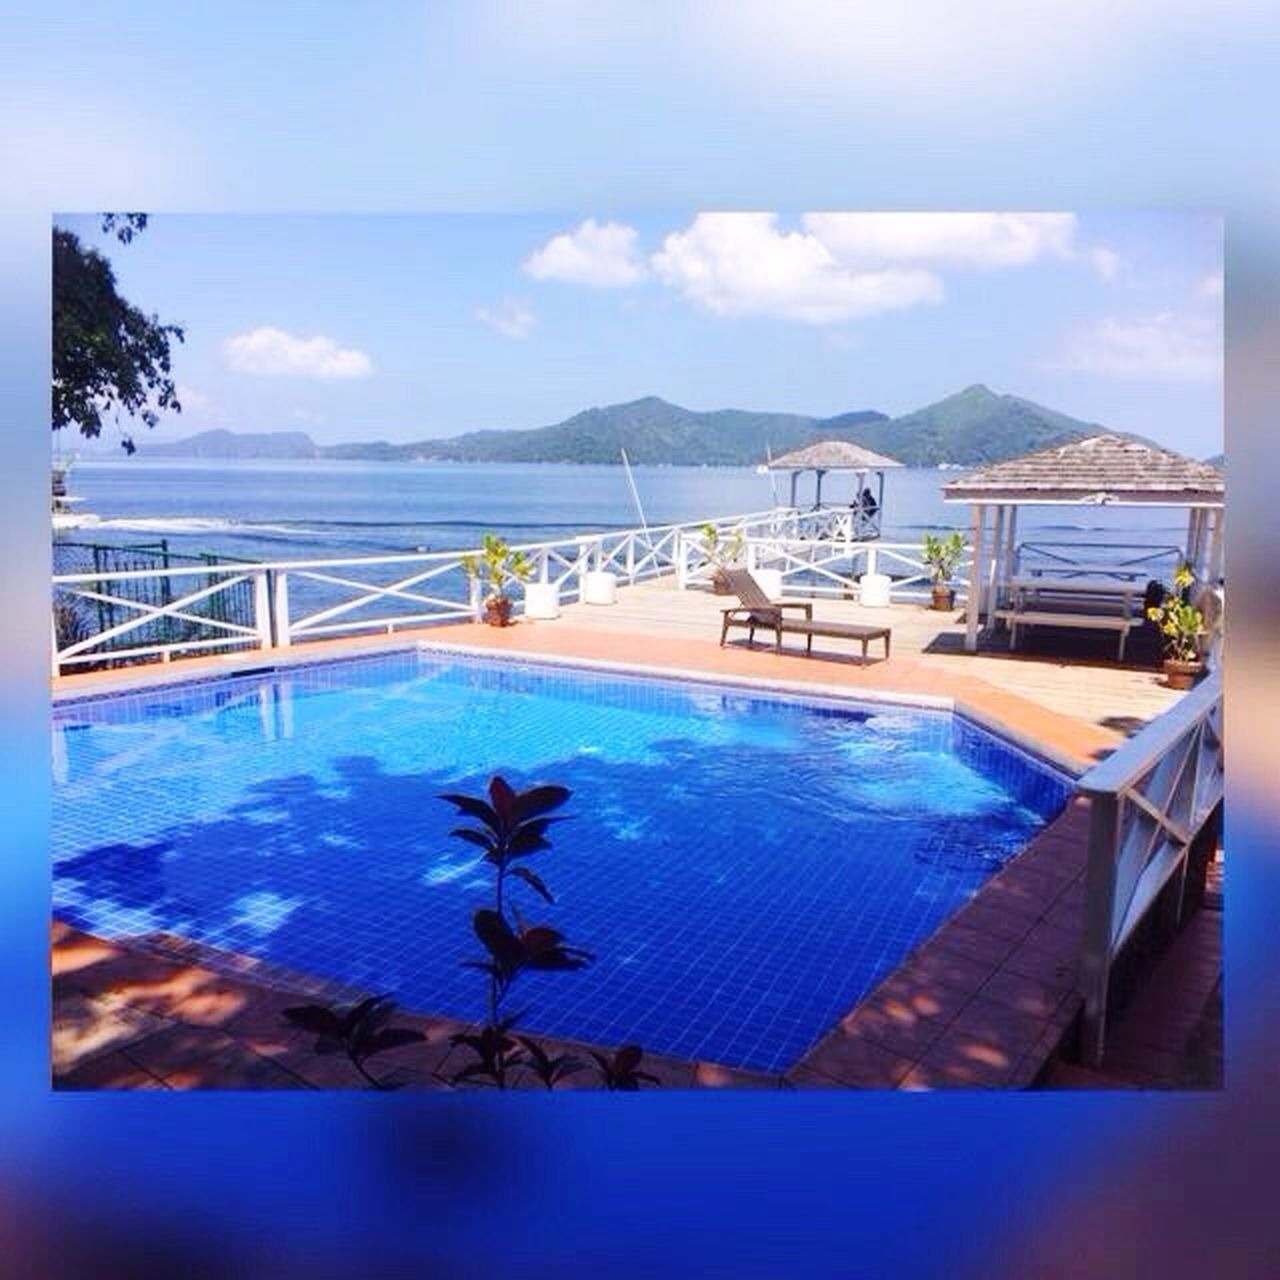 swimming pool, luxury, sea, mountain, water, tropical climate, tourist resort, luxury hotel, vacations, blue, travel destinations, tranquil scene, scenics, sky, nature, cloud - sky, no people, outdoors, day, holiday villa